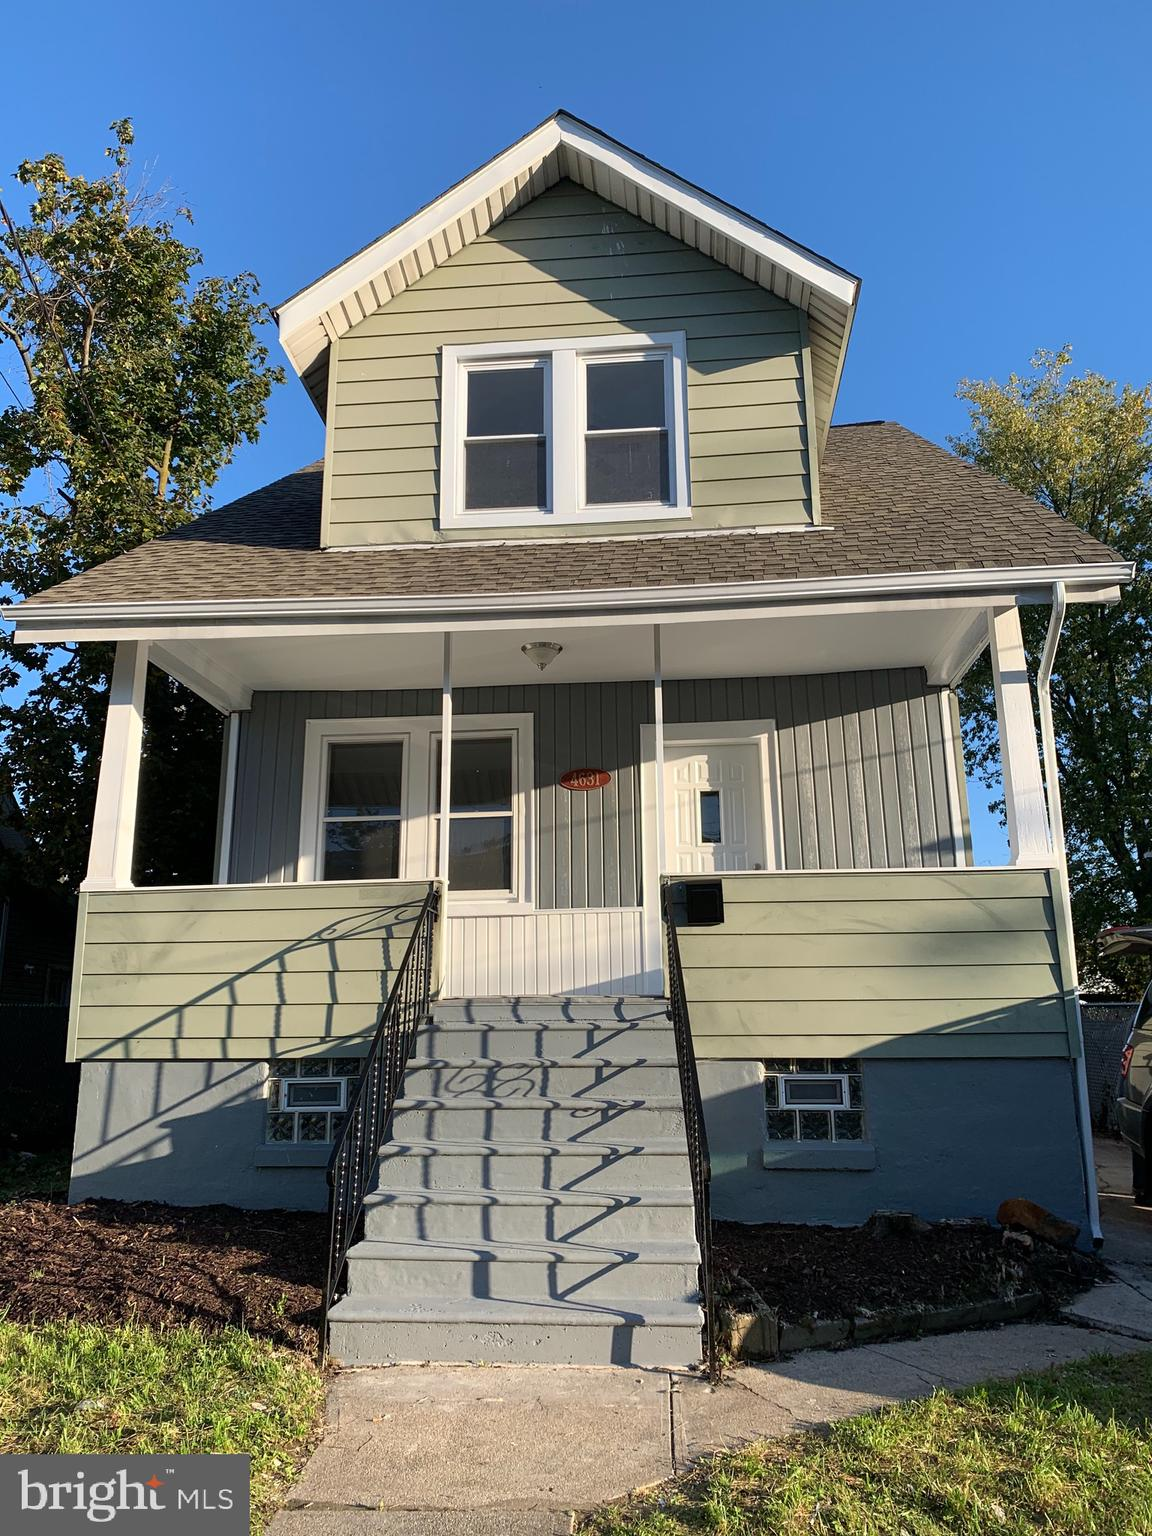 Beautiful Completely renovated   3 bedrooms   1 full bath/1 half bath Modern home. Brand new stainless steel appliances, granite tops, hardwood flooring, and painted walls, tiled bathrooms, washer and dryer, roofing and more! Come and see for yourself!